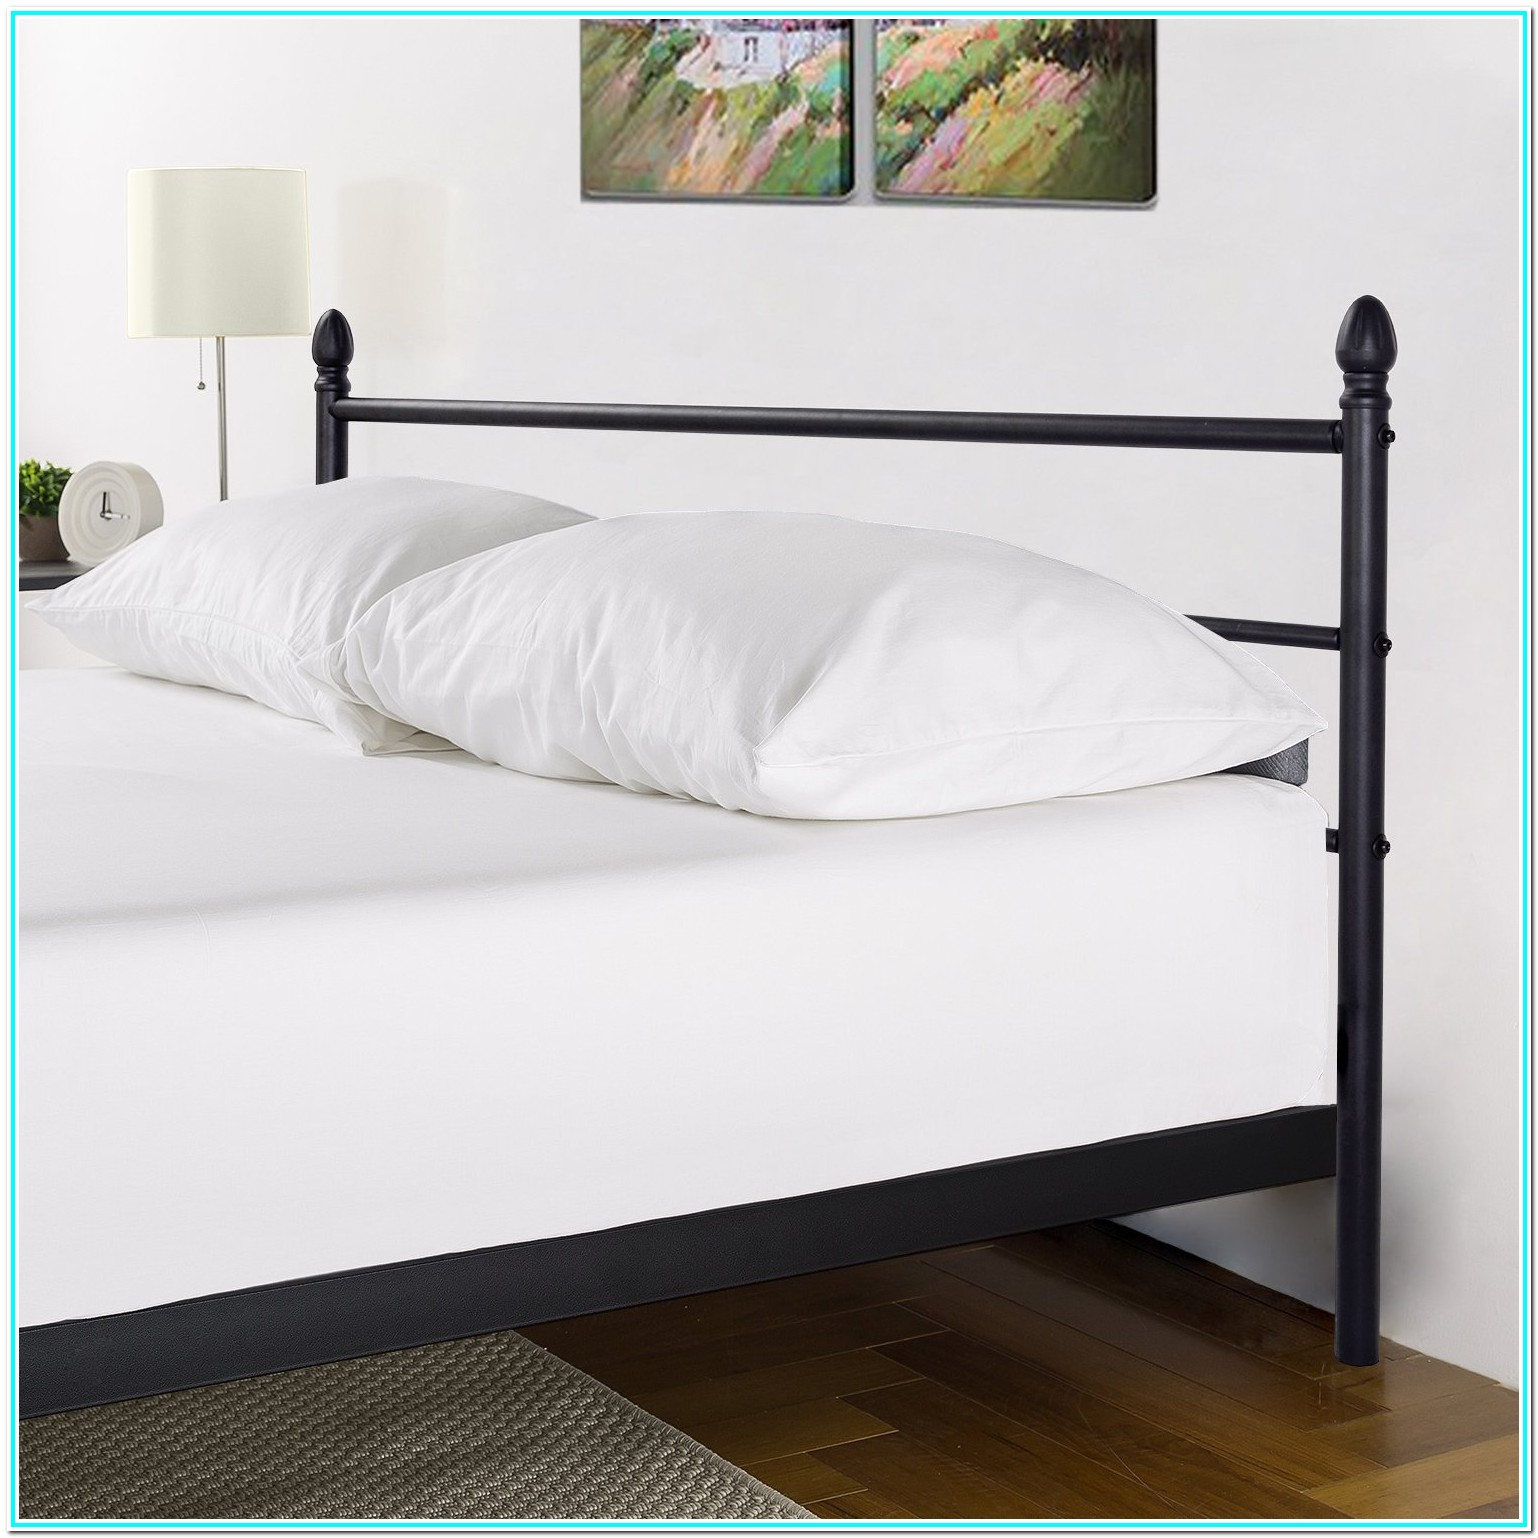 Queen Bed Frame With Headboard Amazon